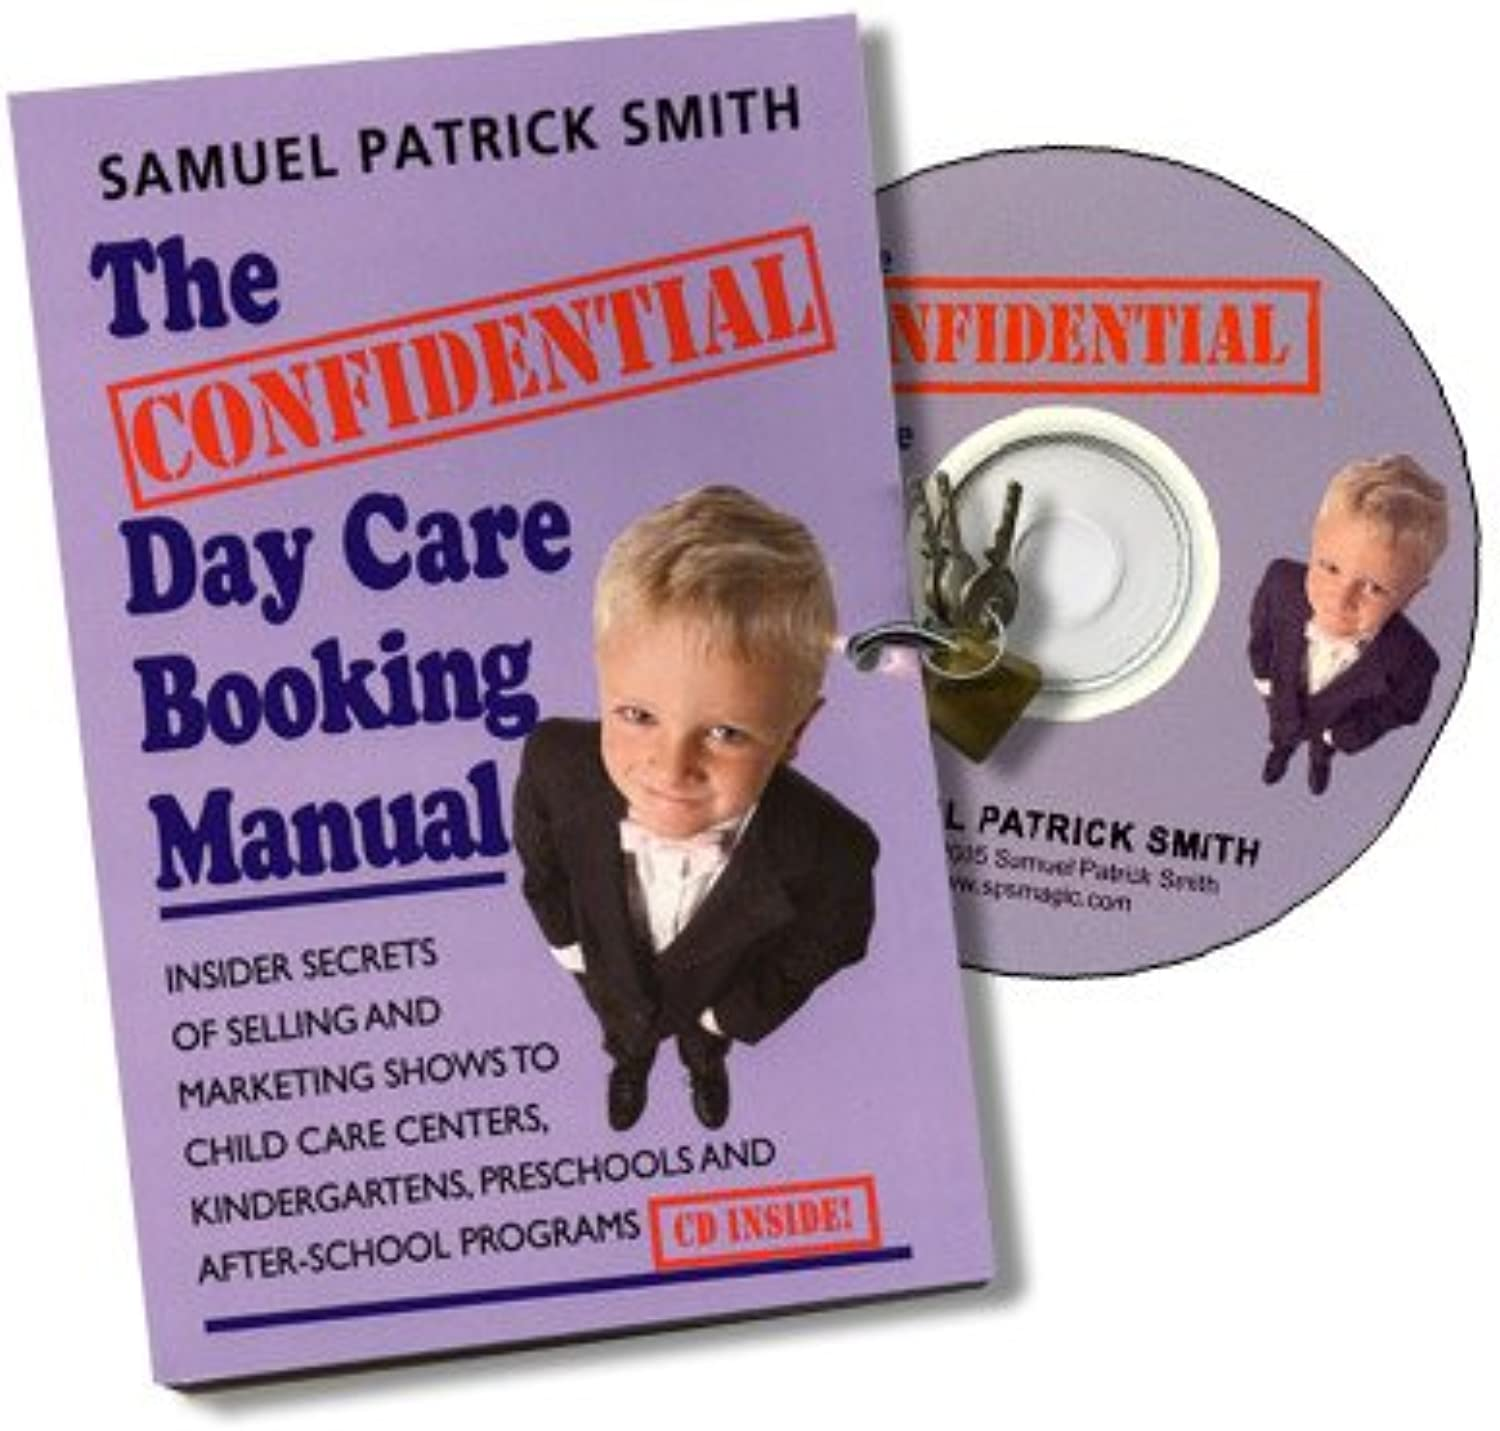 Murphys Confidential Day Care Booking Manual w CD by Samuel Patrick Smith B00FM0C3EY Sofortige Lieferung    | Tadellos